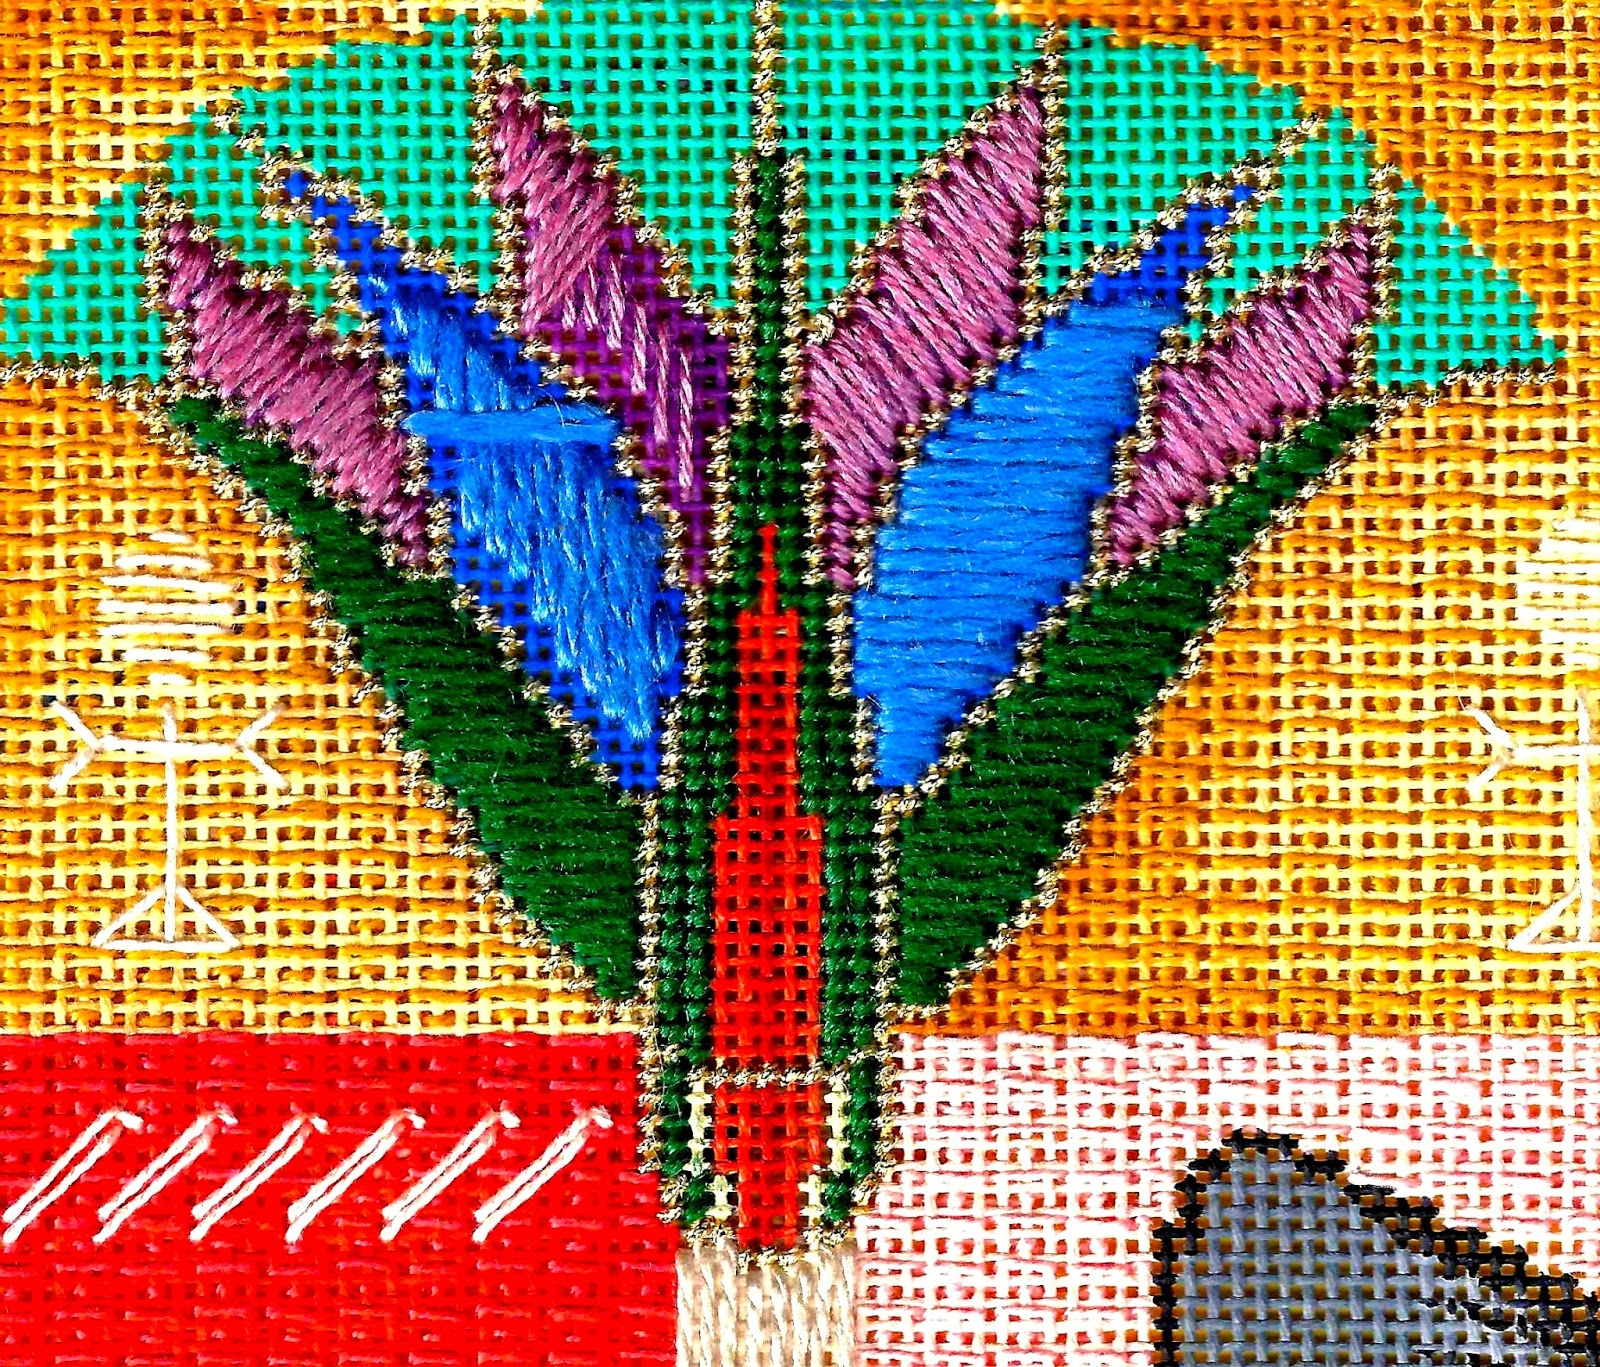 WELCOME To The CHILLY HOLLOW NEEDLEPOINT ADVENTURE: The